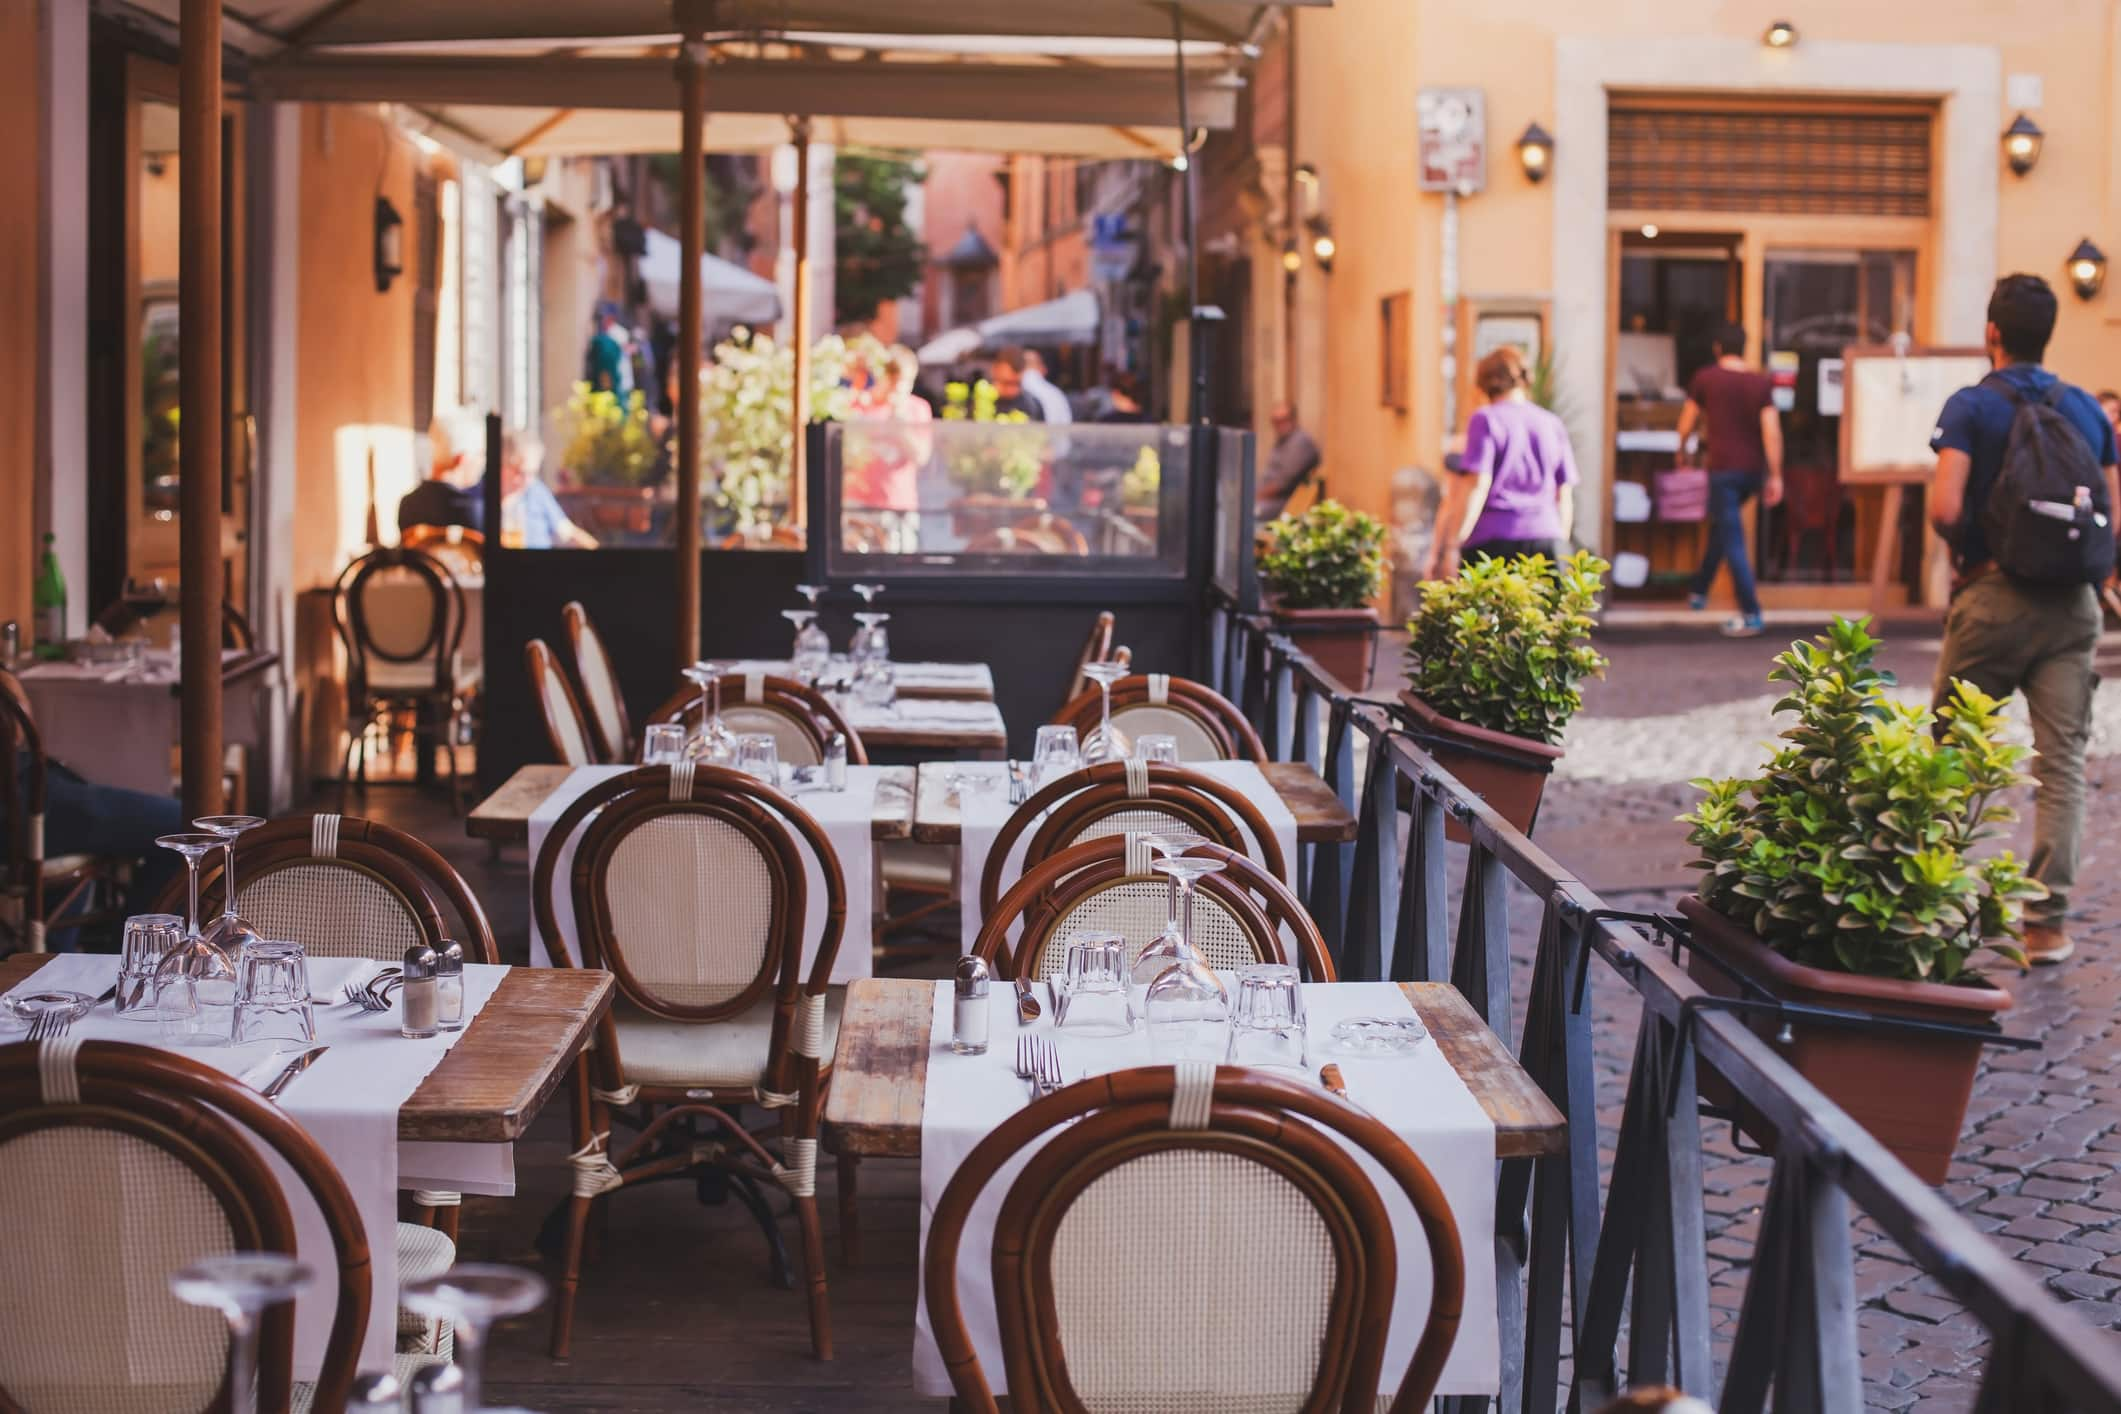 The Pros and Cons of 9 Restaurant Location Types